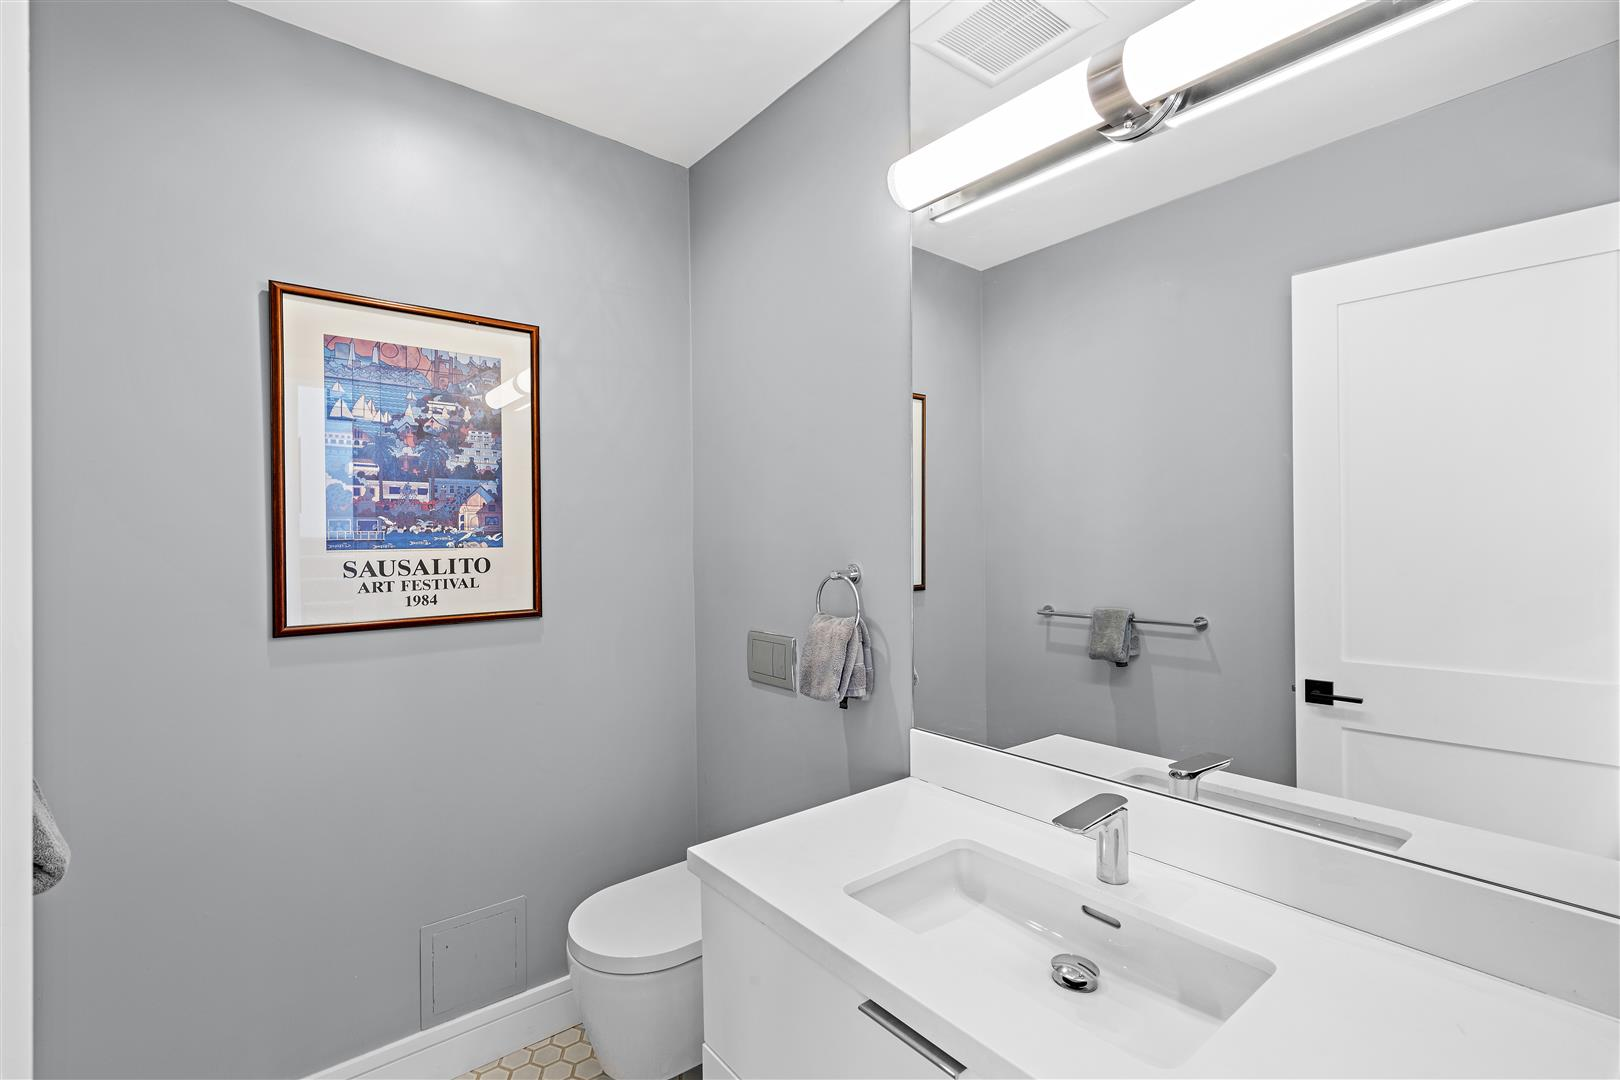 25b-MLS-375-30th-Ave-San-Francisco19.jpg #27